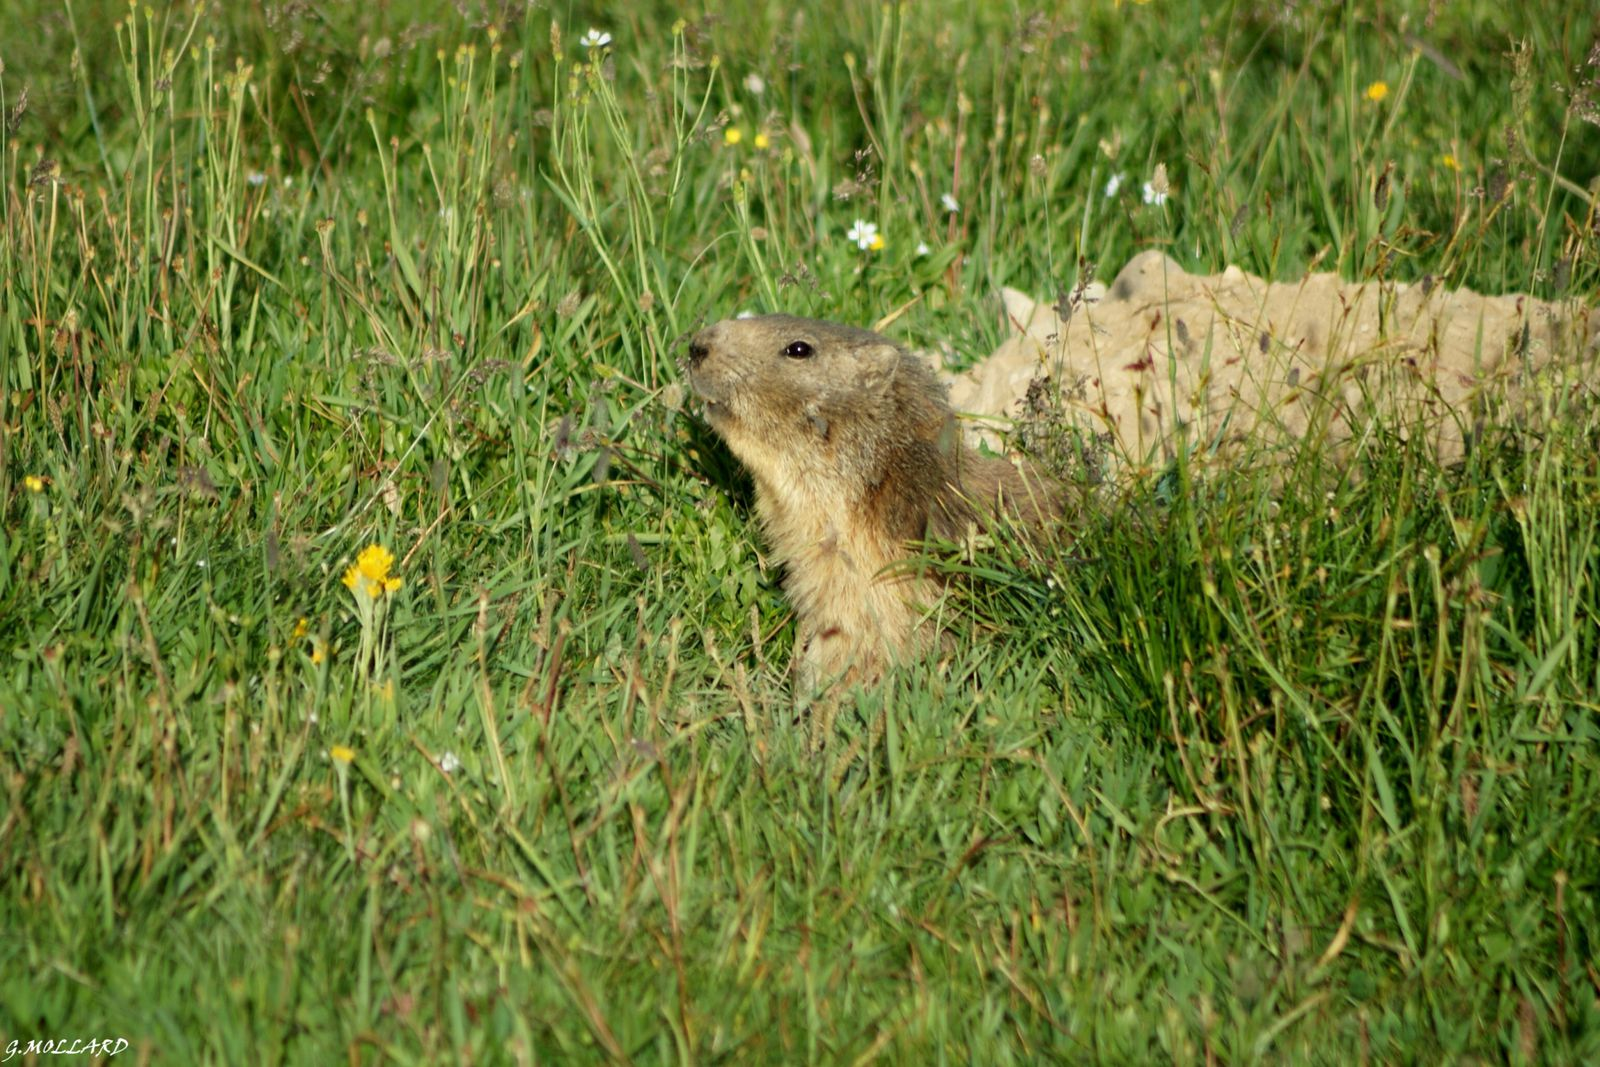 marmotte qui sort de son terrier.